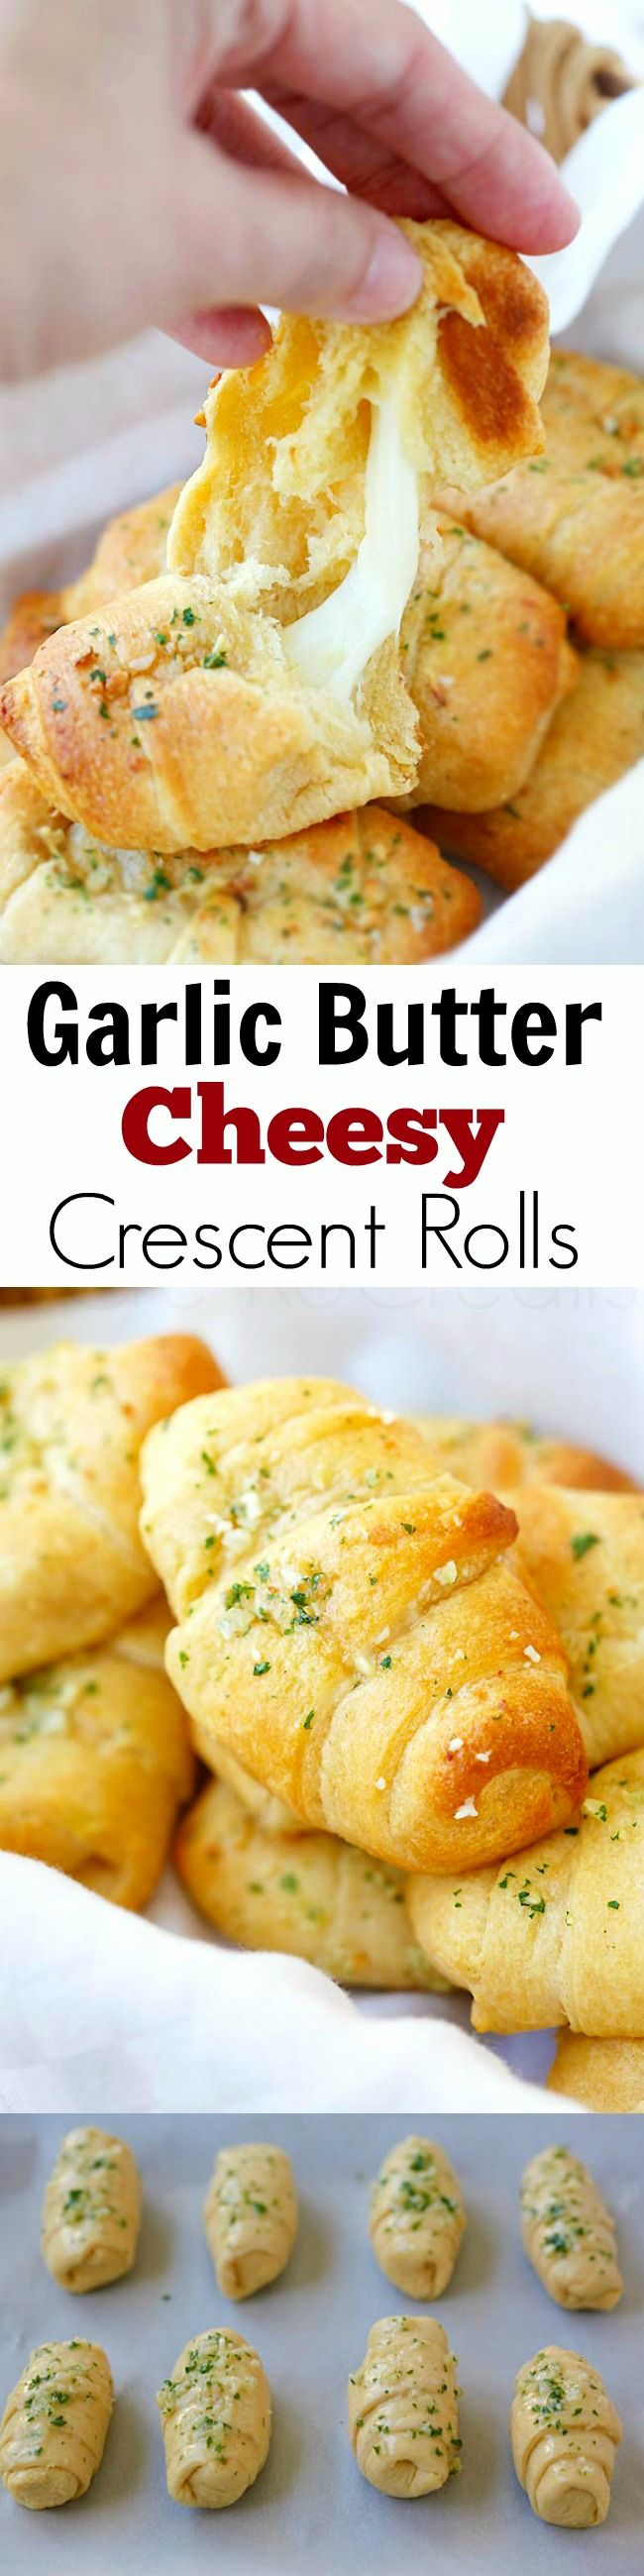 Garlic Butter Cheesy Crescent Rolls - amazing crescent rolls loaded with Mozzarella cheese and topped with garlic butter, takes 20 mins!!! | rasamalaysia.com: